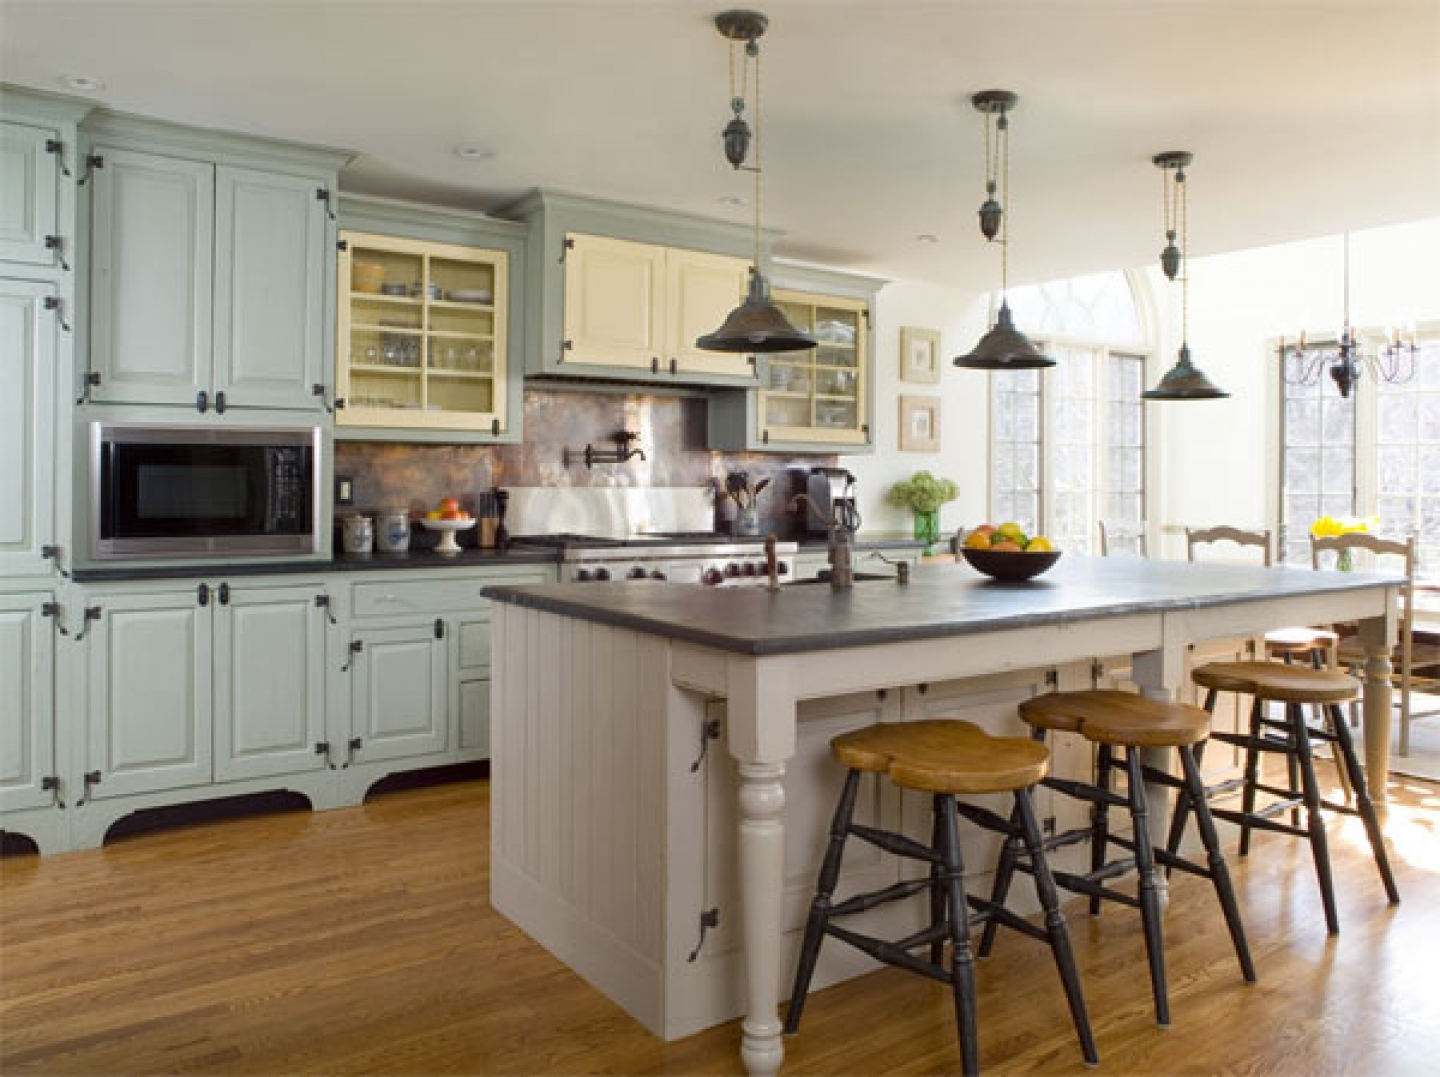 Modern Kitchen With A Vintage Flair Pictures, Photos, and Images